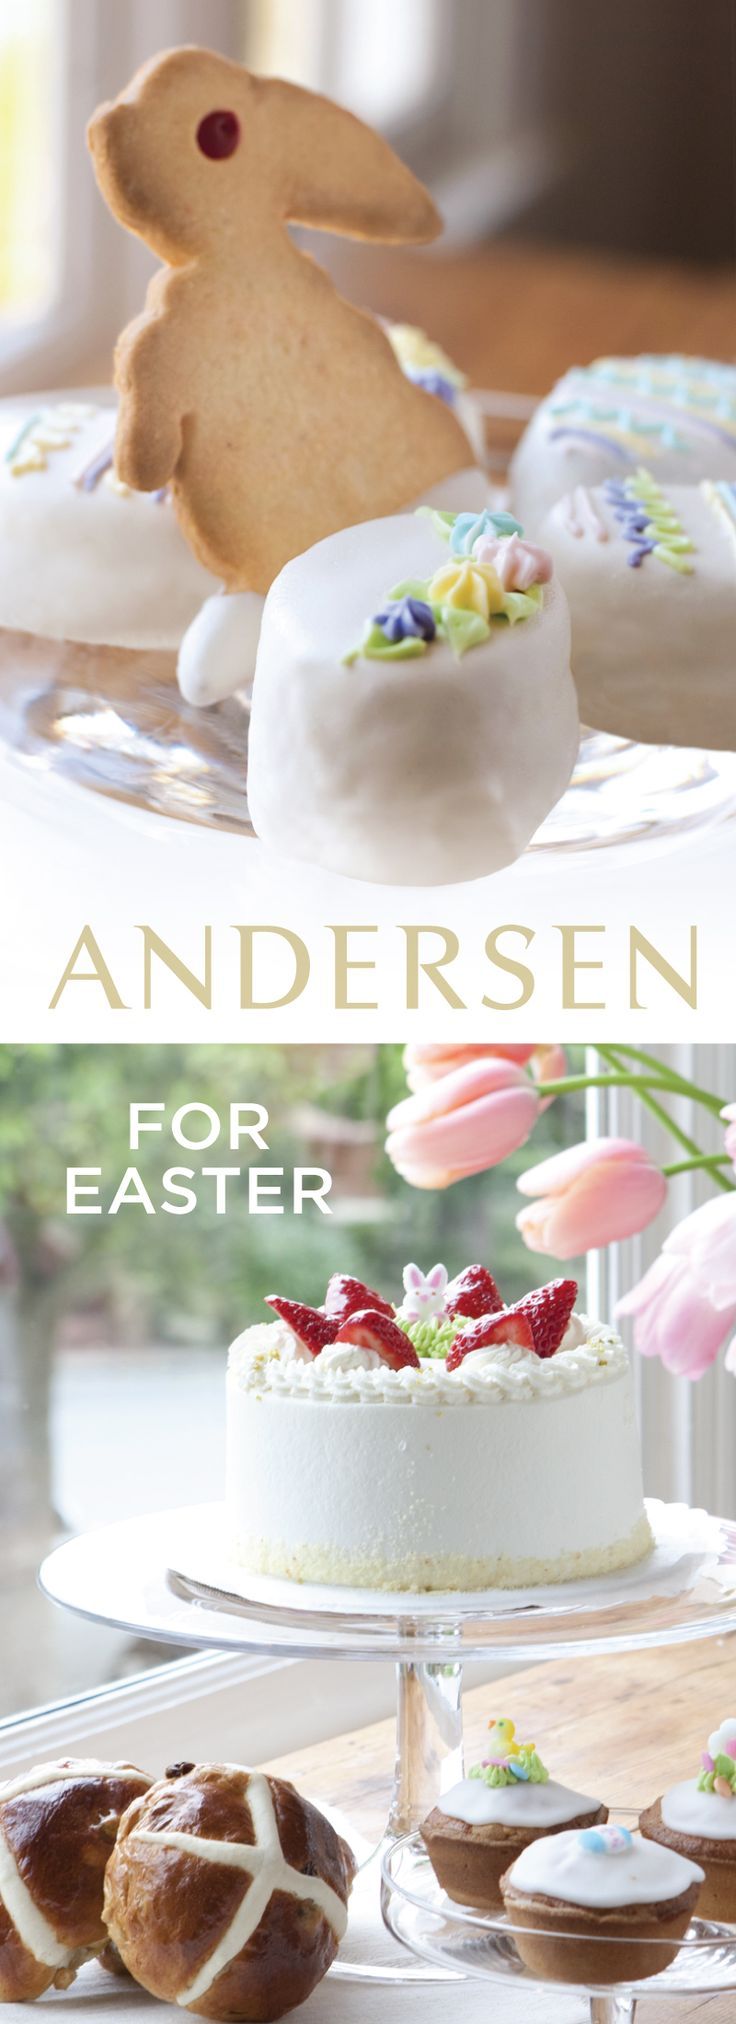 Hot cross buns, beautifully decorated custom cakes, adorable Easter-themed egg cakes and cookies...no matter how you observe Easter, you'll find just the right touch to add to your celebration.